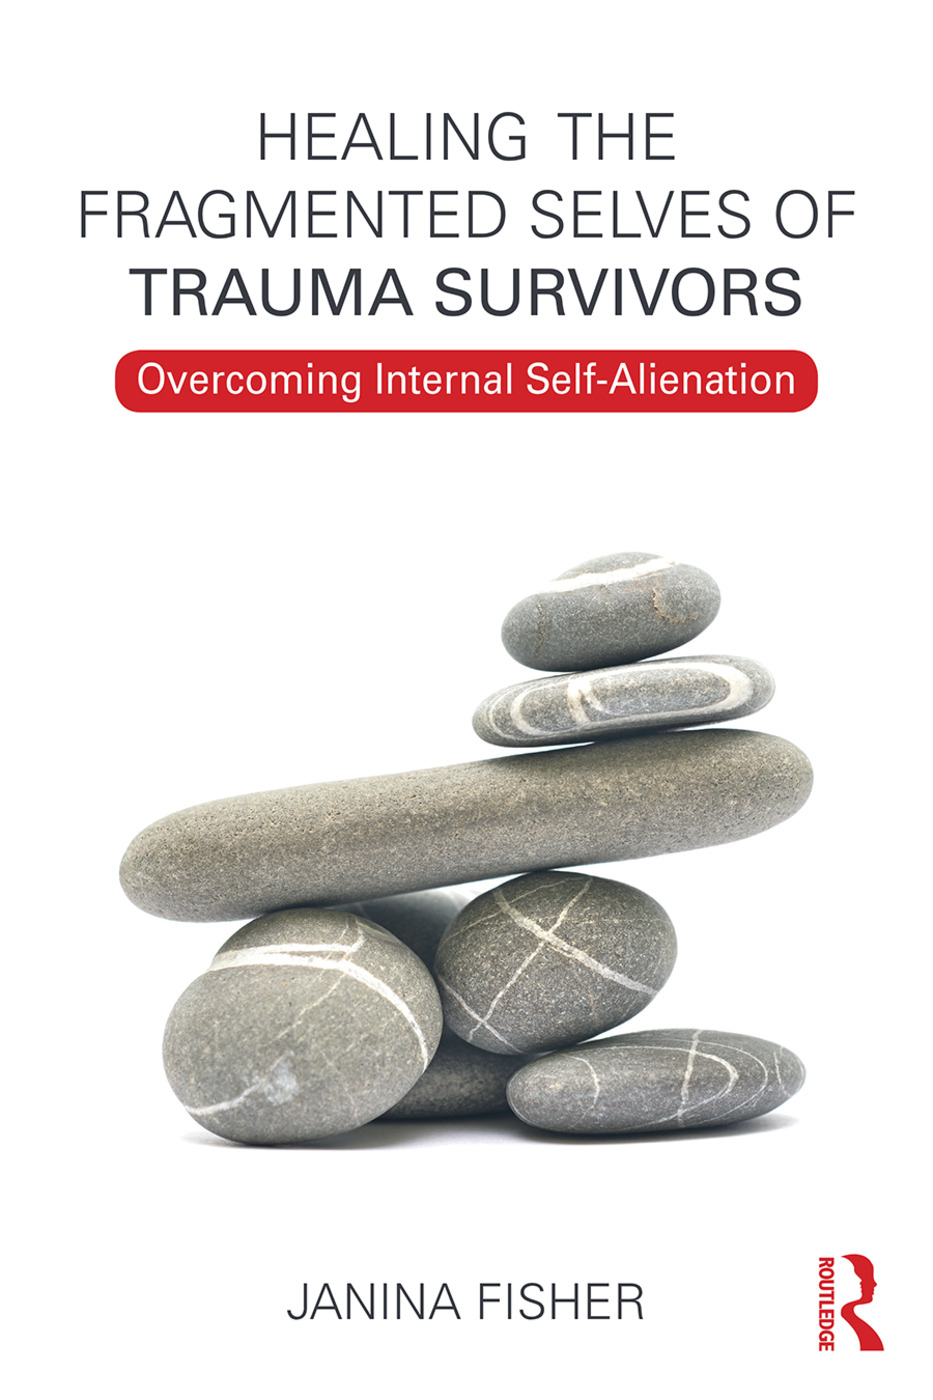 Healing the Fragmented Selves of Trauma Survivors: Overcoming Internal Self-Alienation (Paperback) book cover